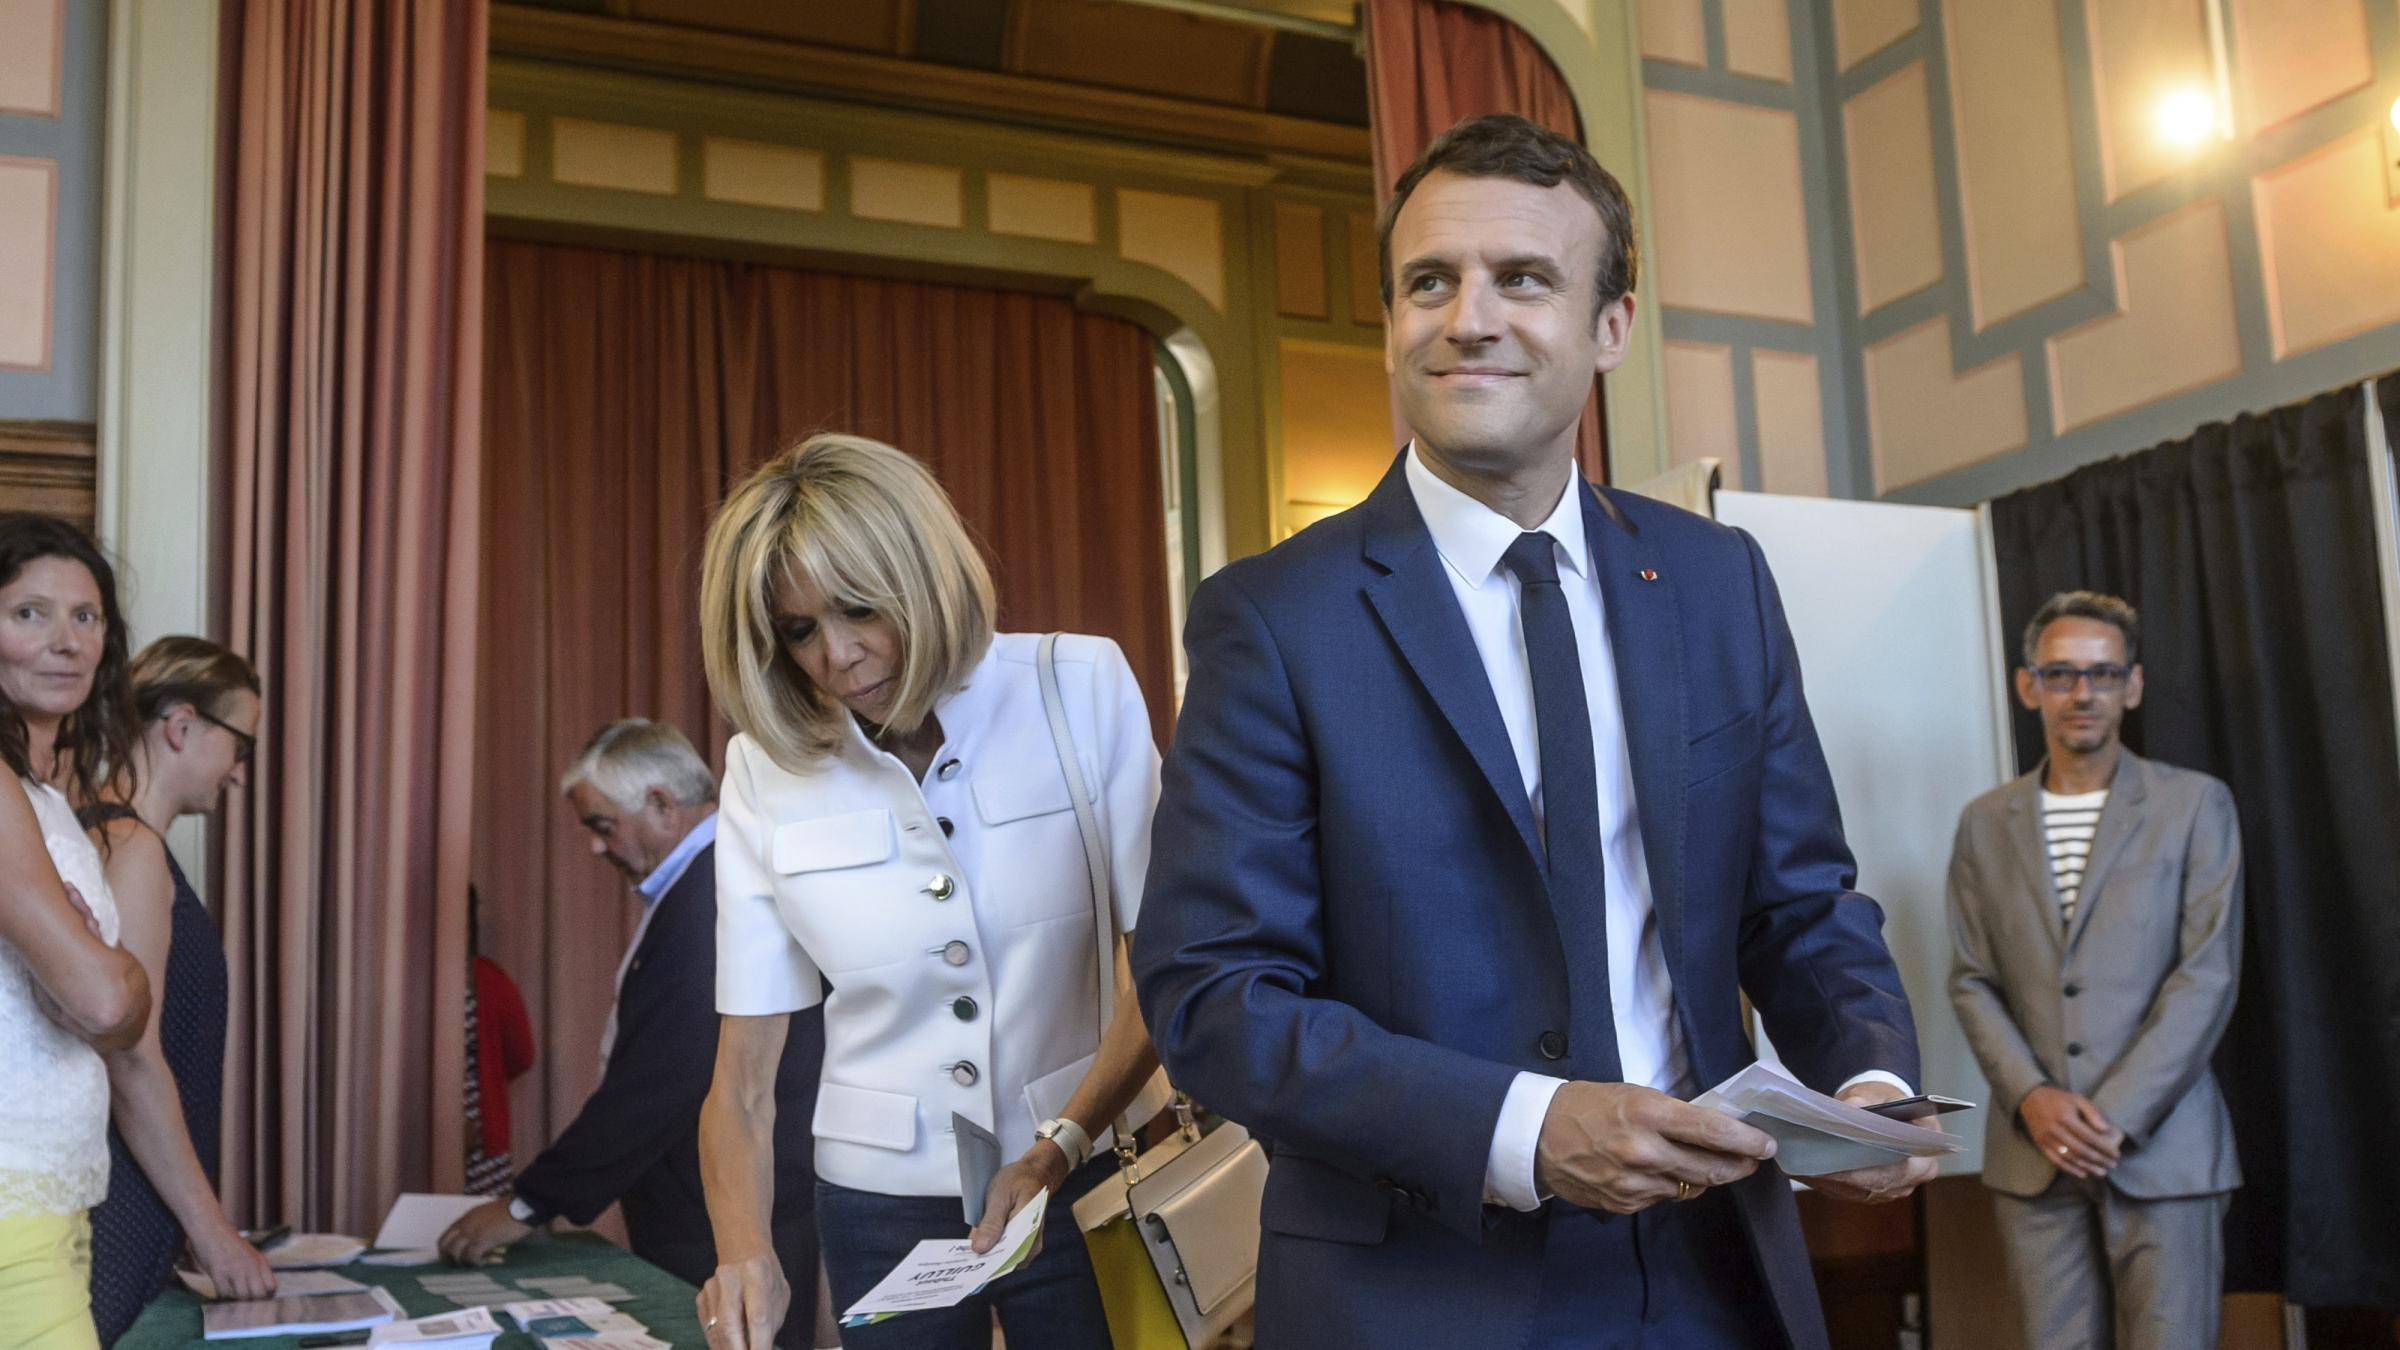 Emmanuel Macron is headed for a record-breaking legislative majority